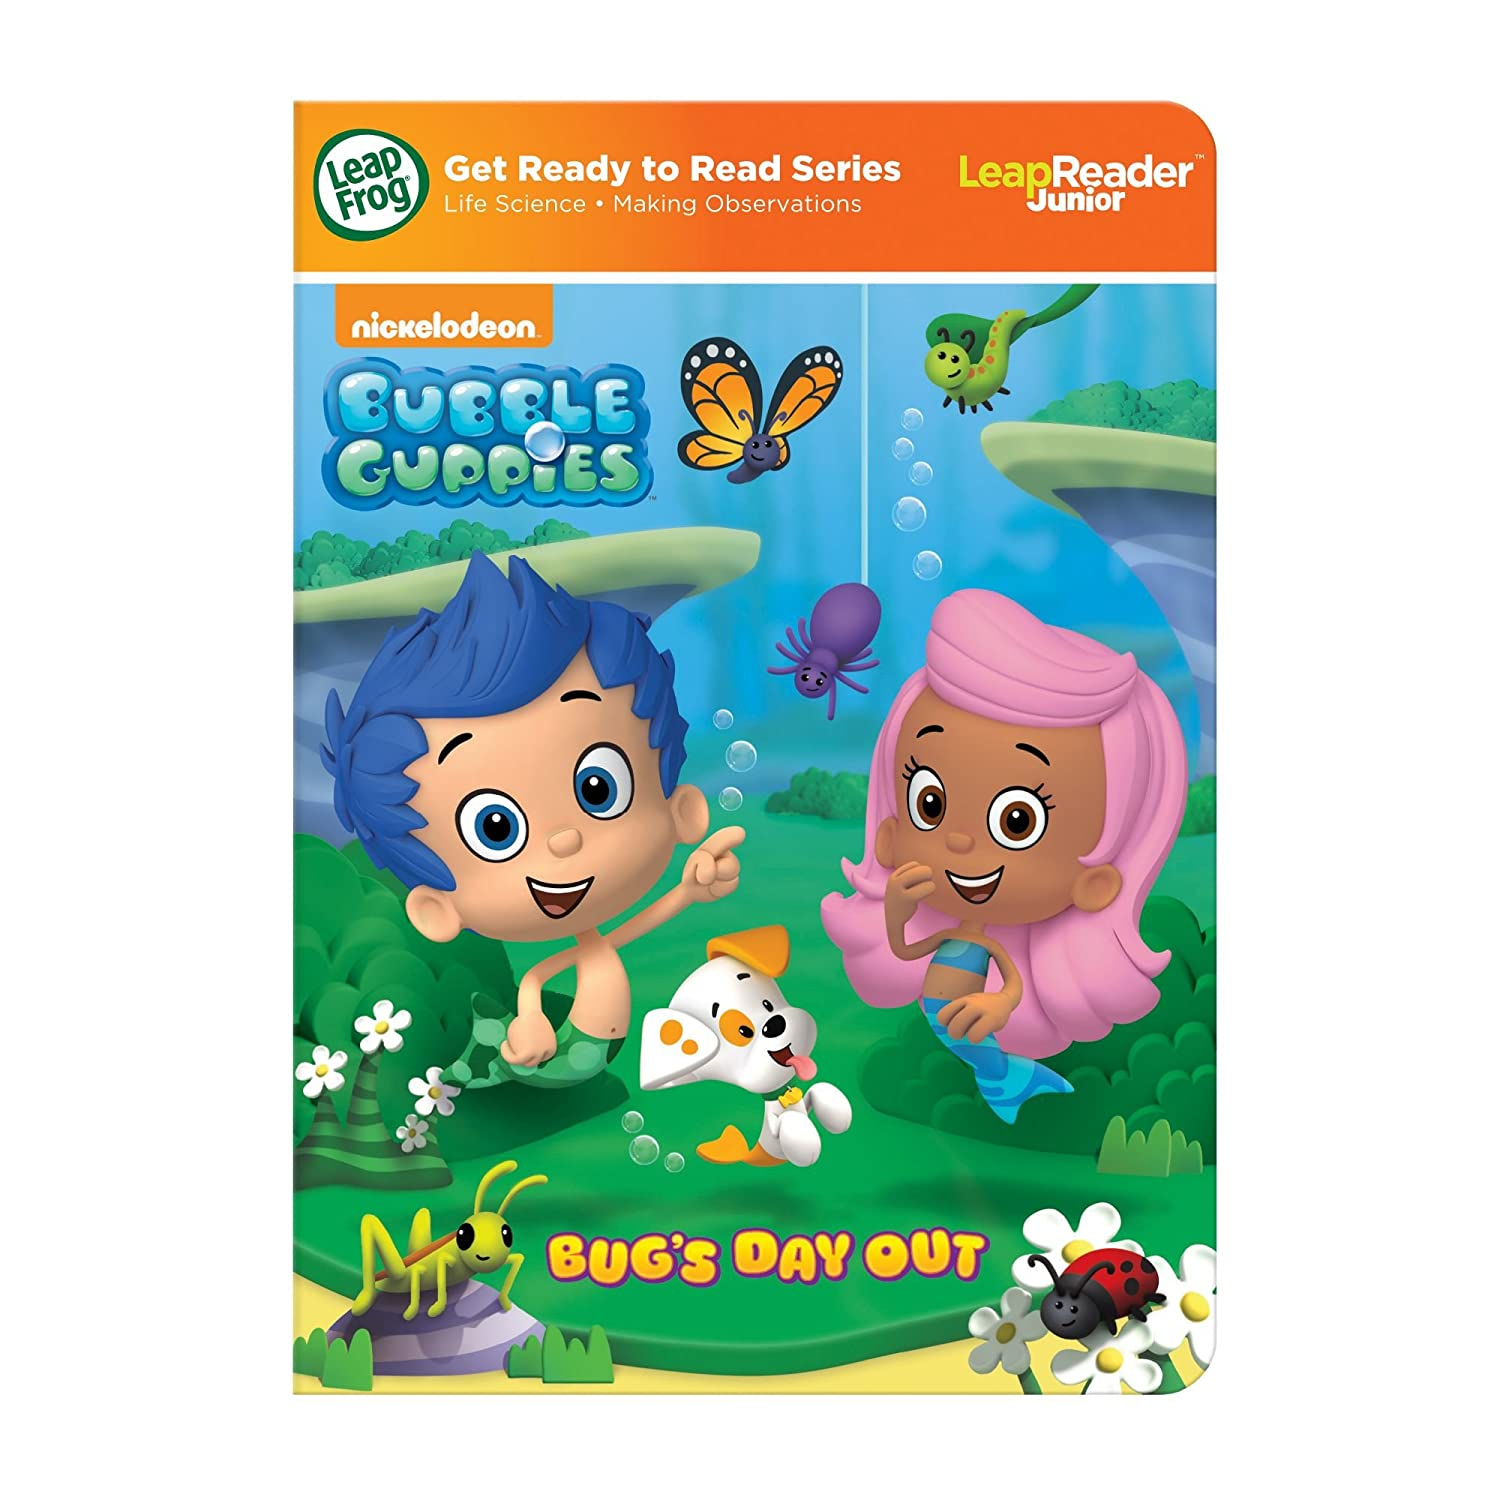 amazon com leapfrog nickelodeon bubble guppies bug u0027s day out